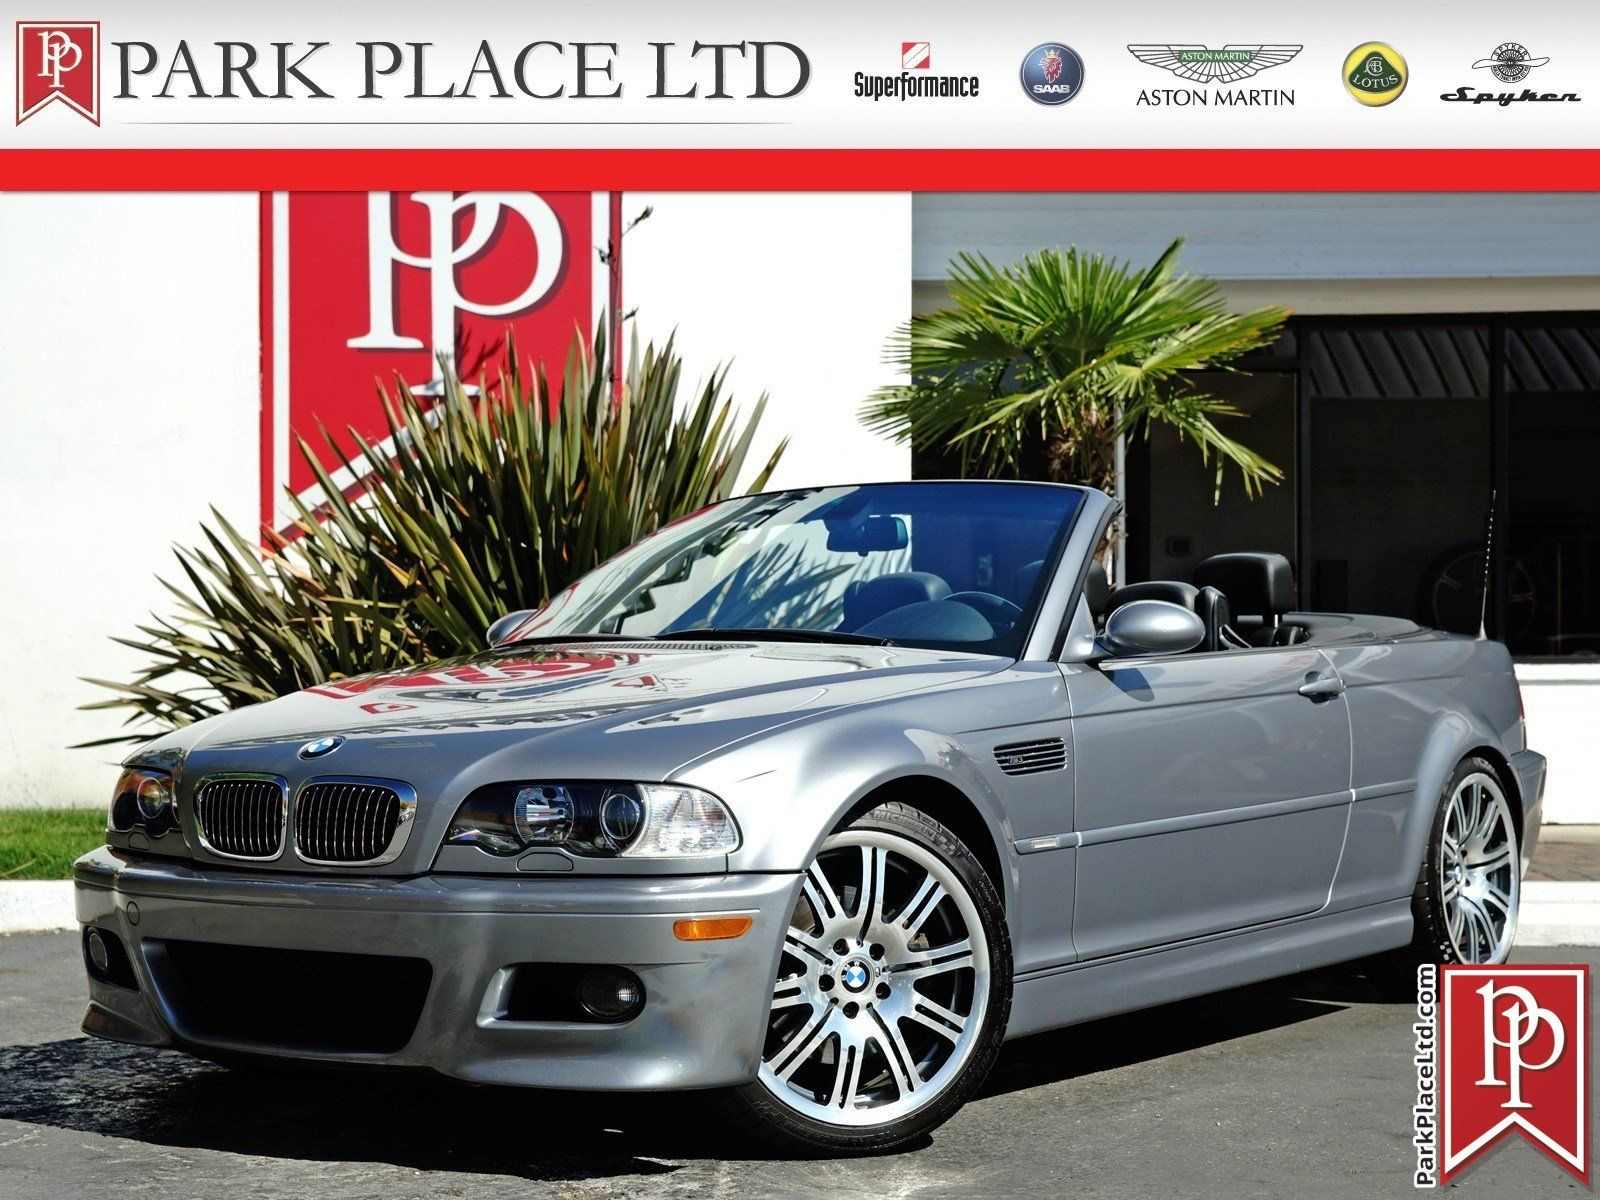 Cars For Sale Used 2004 Bmw M3 Convertible For Sale In Bellevue Wa 98005 Convertible Details 436434449 Autotrad Bmw Bmw Cars For Sale Bmw M3 Convertible